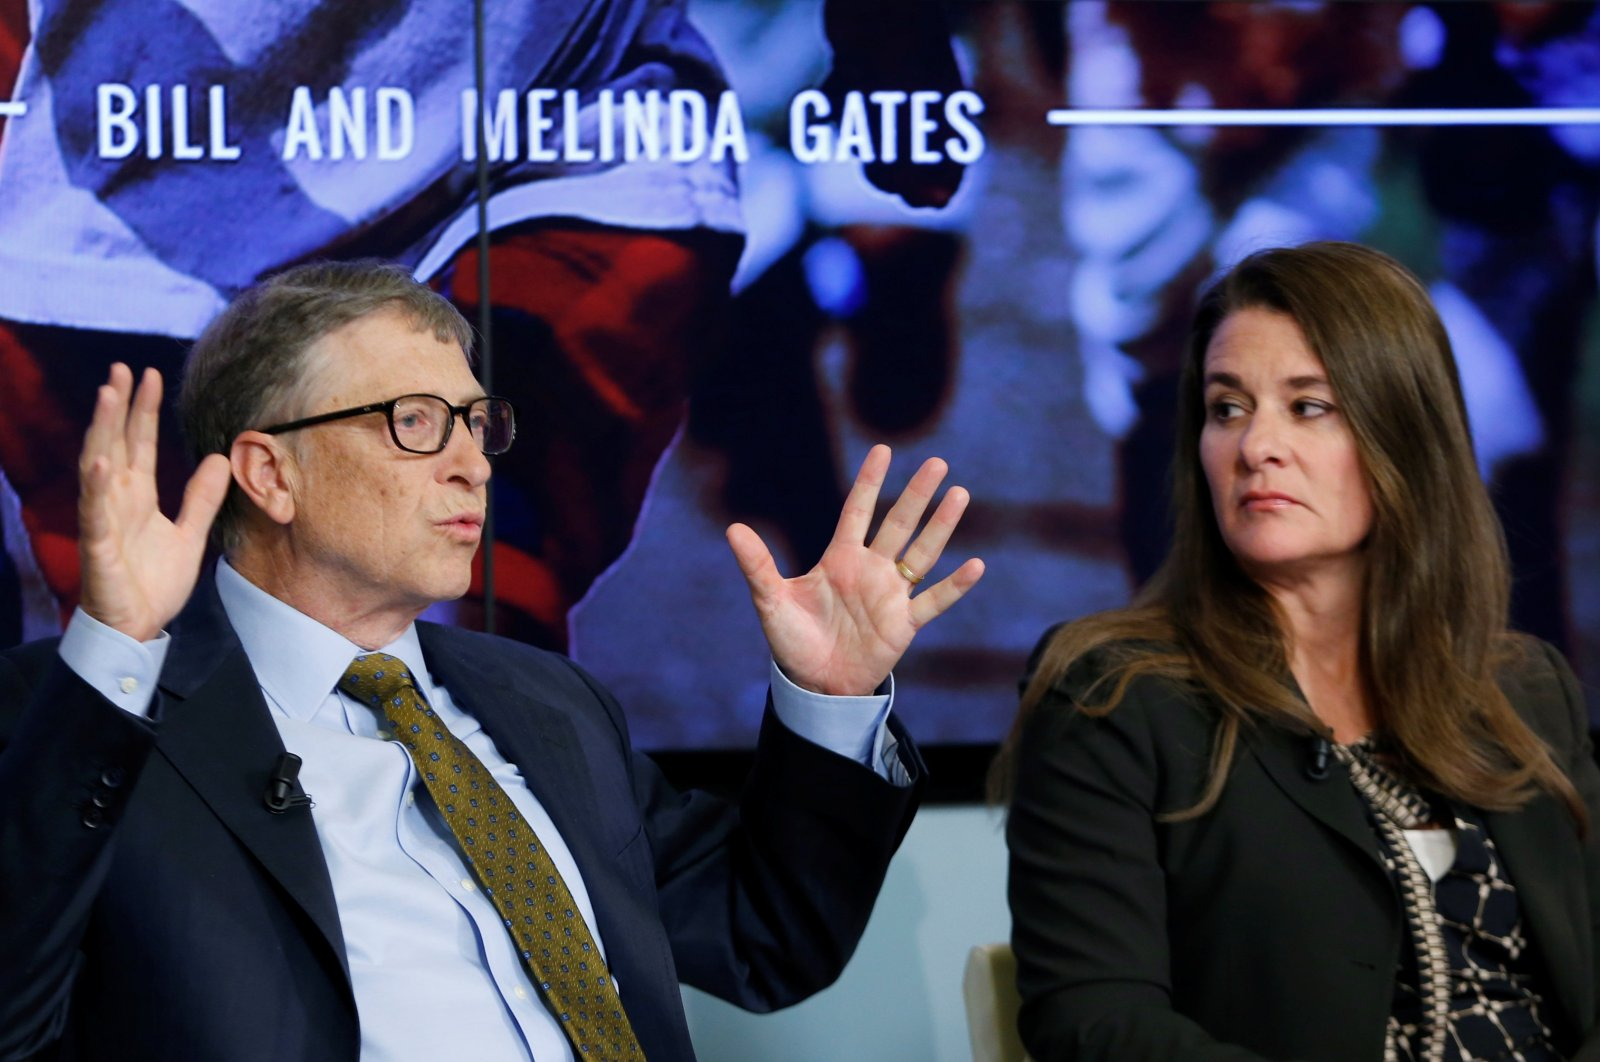 Bill and Melinda Gates attend a debate on the 2030 Sustainable Development Goals in Brussels January 22, 2015. (Reuters File Photo)